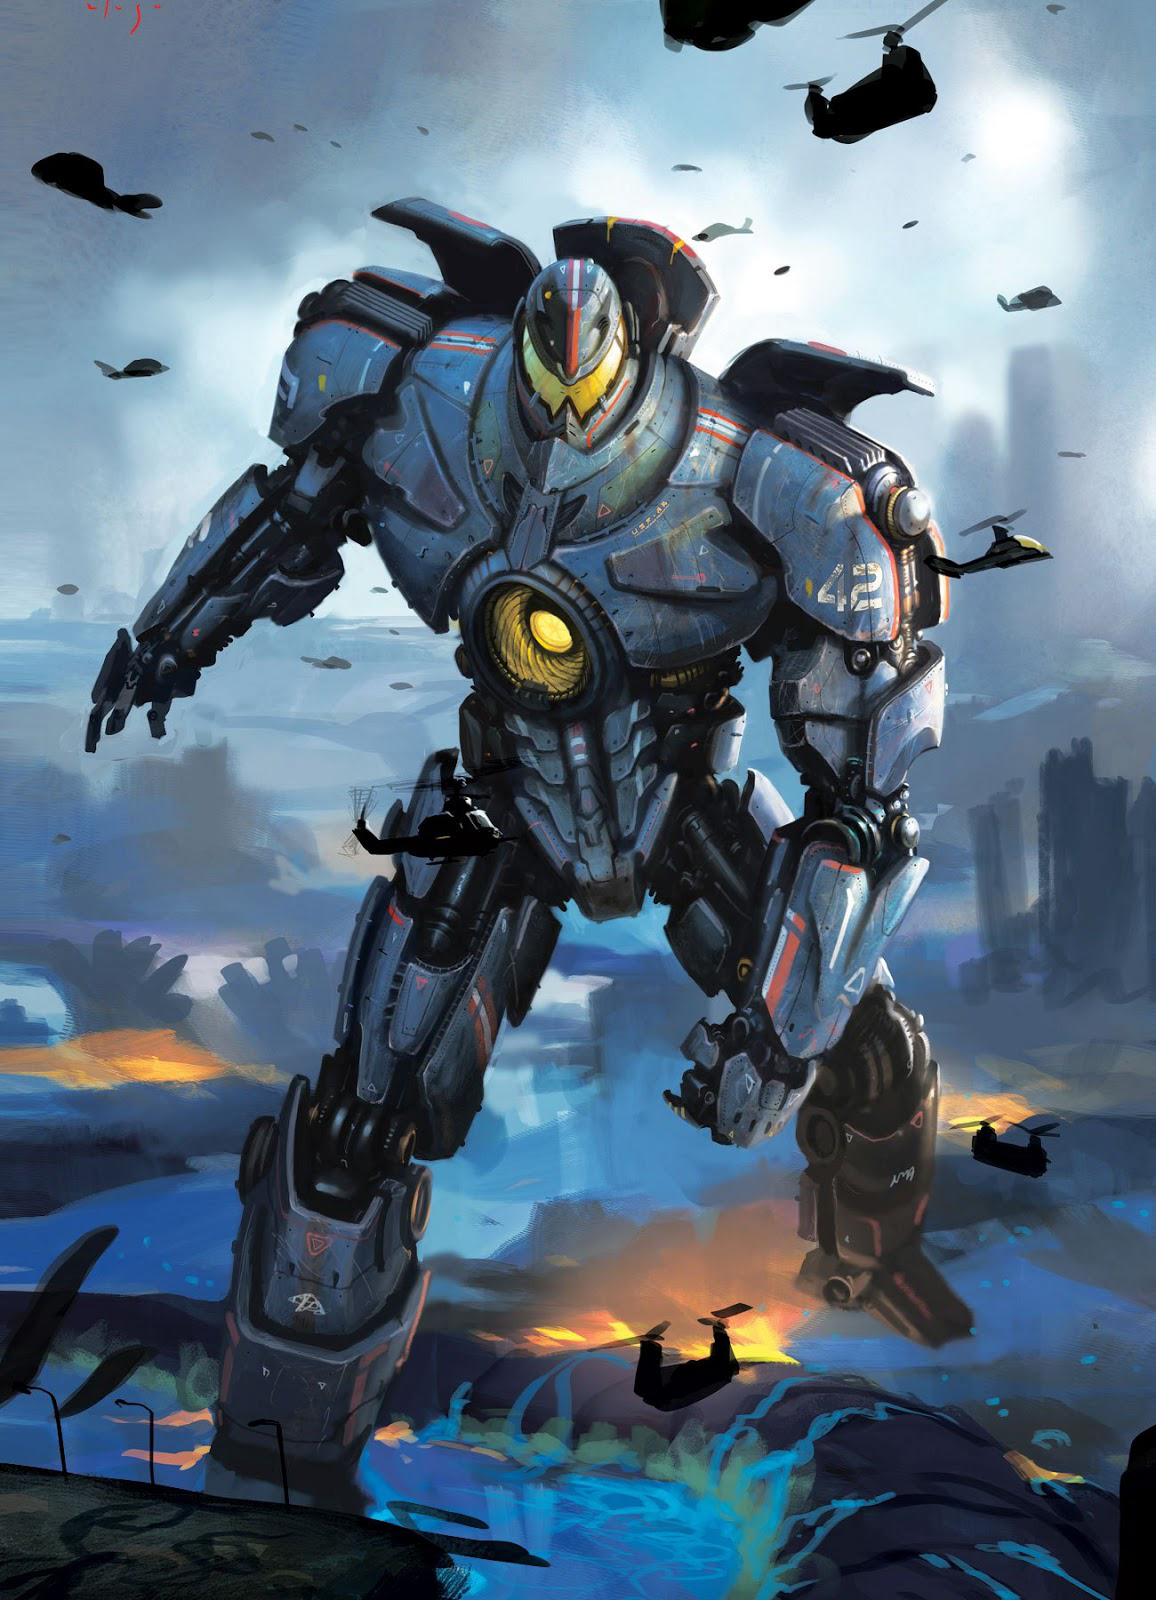 Pacific Rim Concept Art Is Awesome Even Without The Movie ...